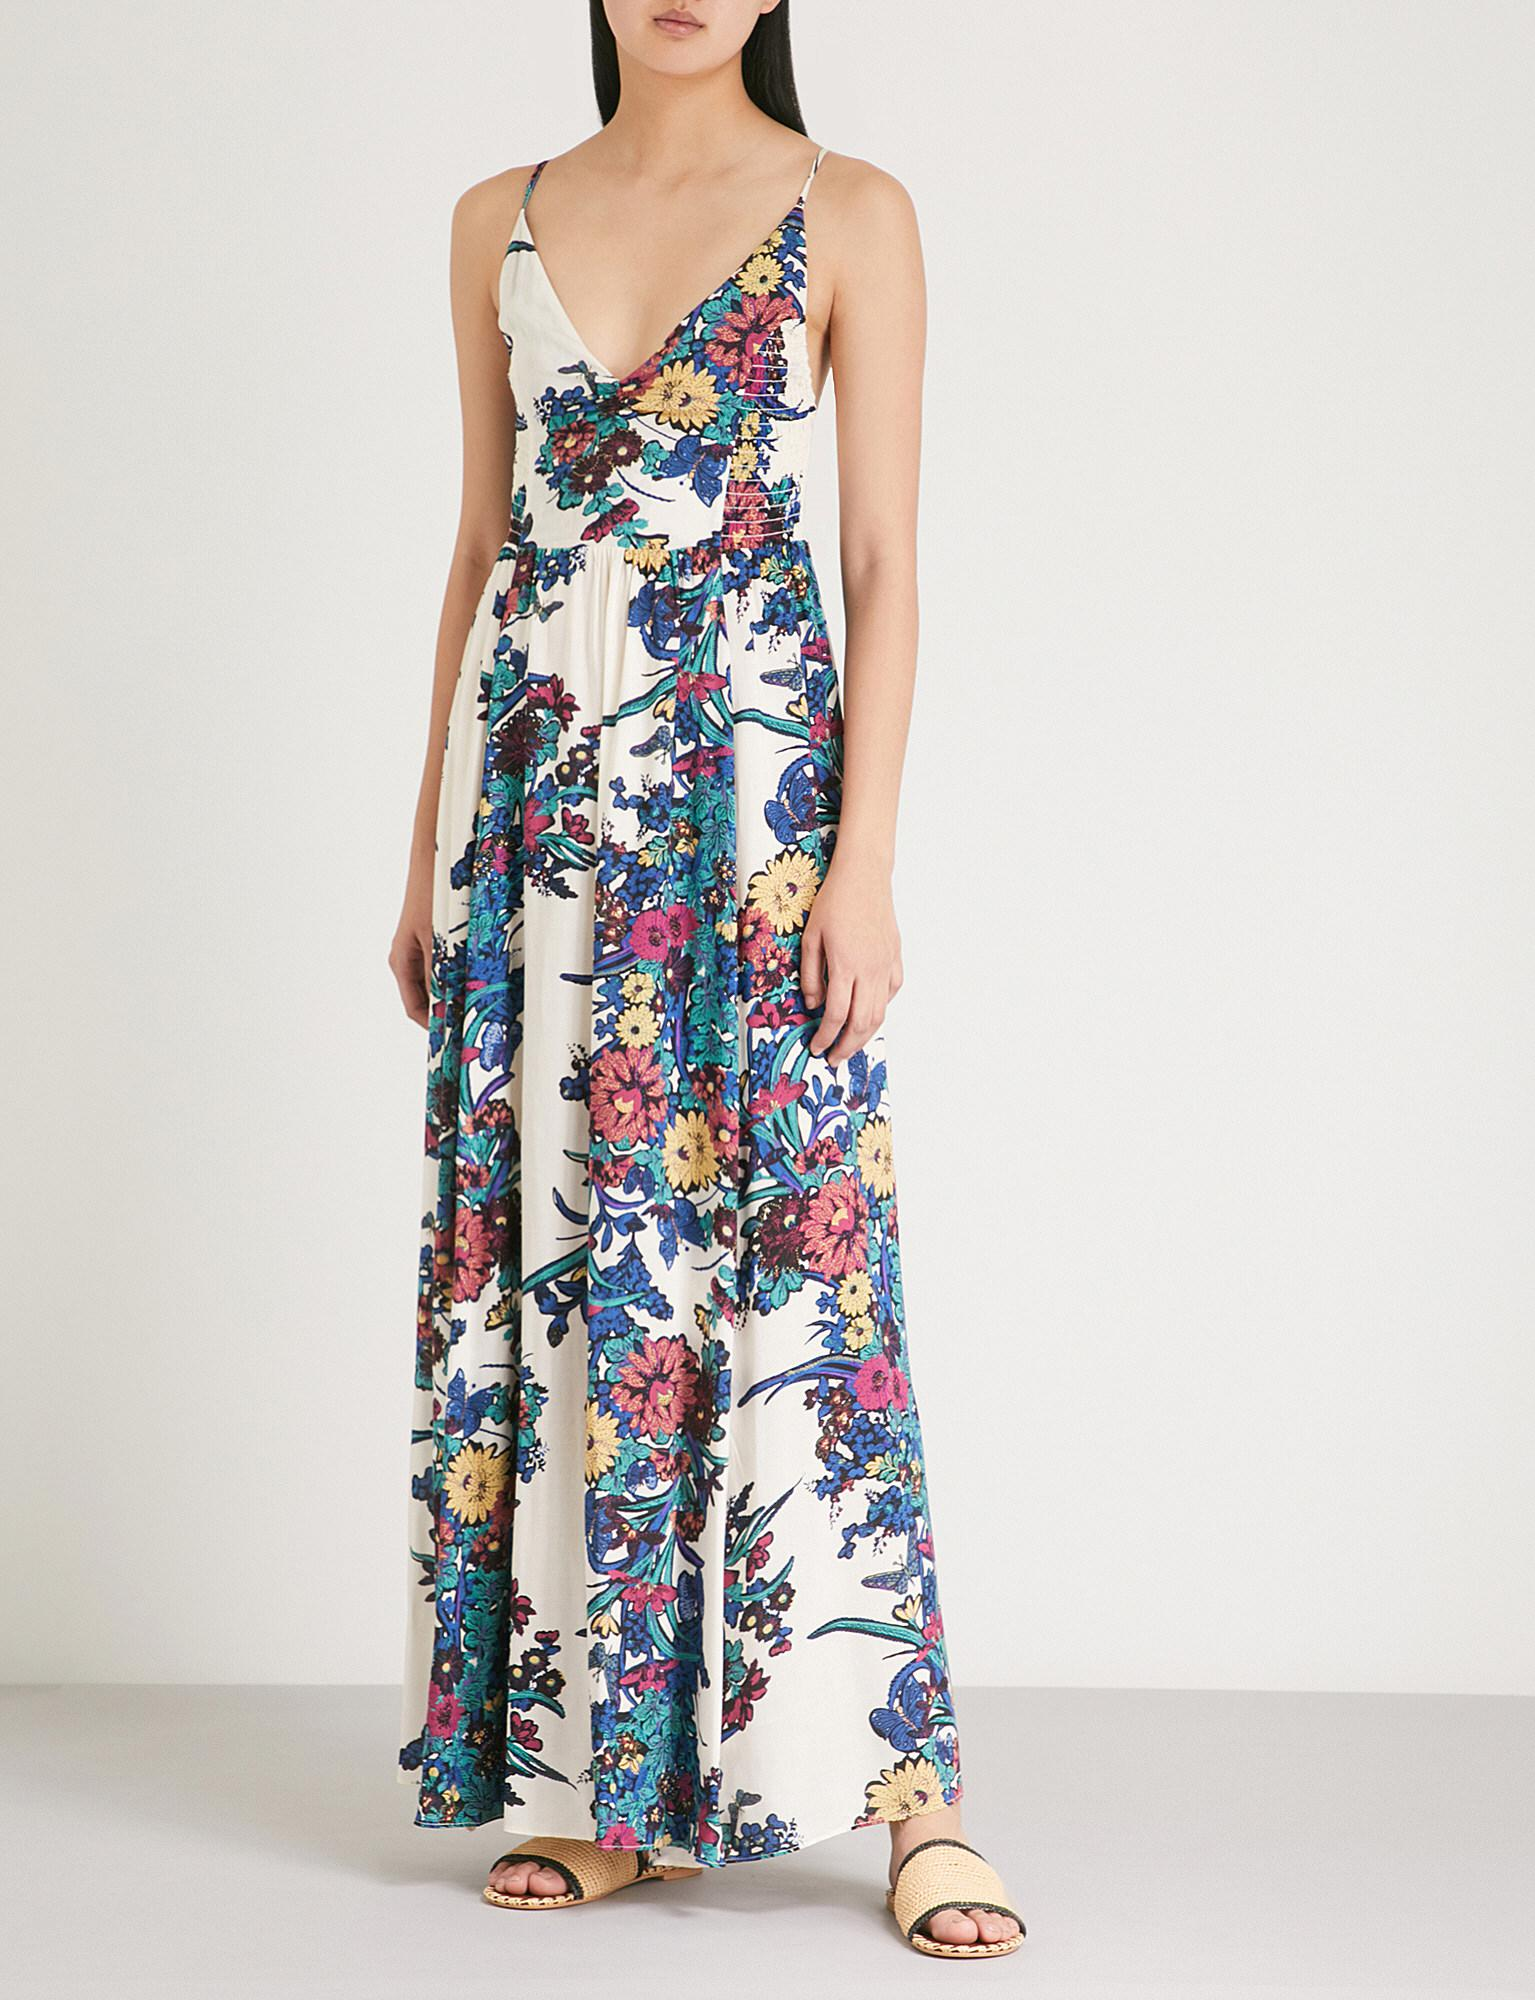 aee68f60a8ce Lyst - Free People Through The Vine Floral-print Woven Dress in Blue